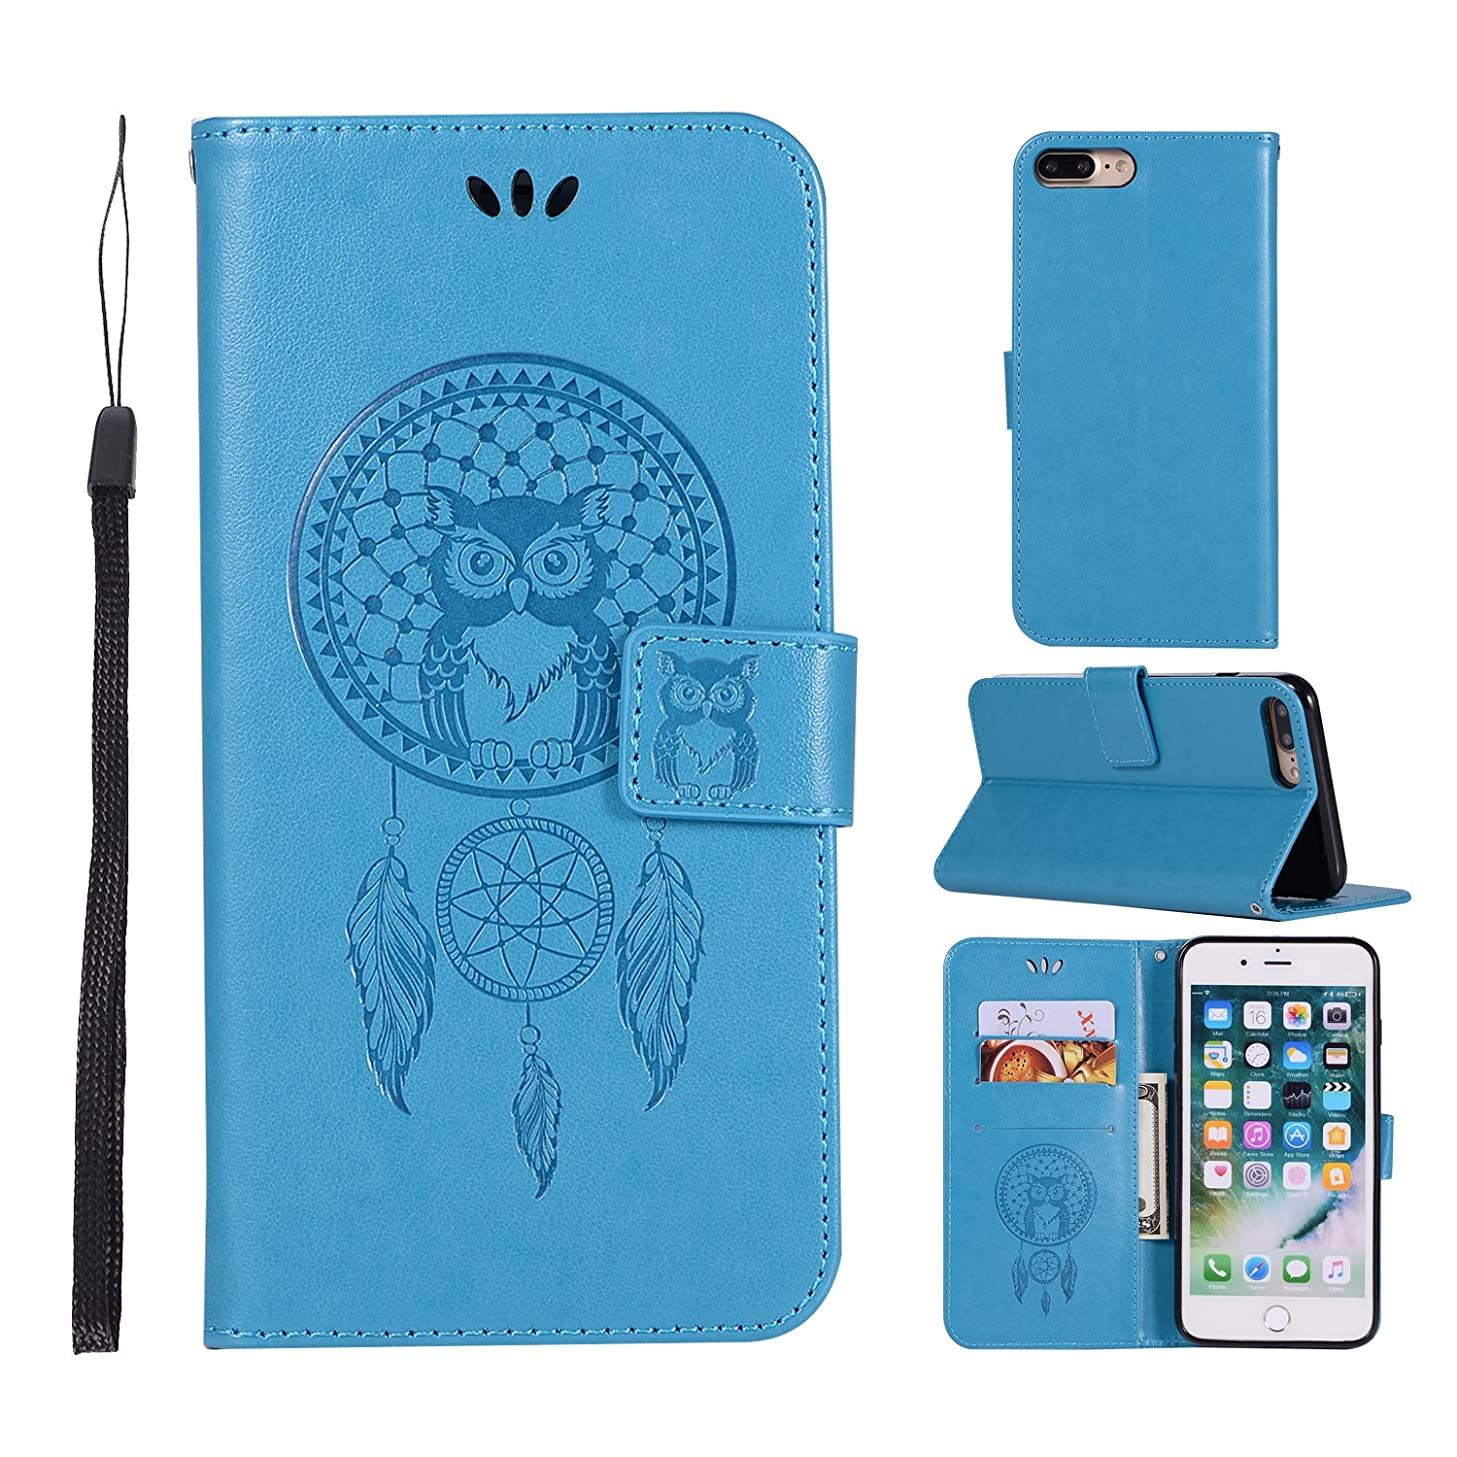 iPhone 7 Plus Case, iPhone 8 Plus Case, DECVO PU Leather Wallet Case with Kickstand and Magnetic Flip Cover Card Holders for iPhone 7 plus/iPhone 8 plus (Blue)